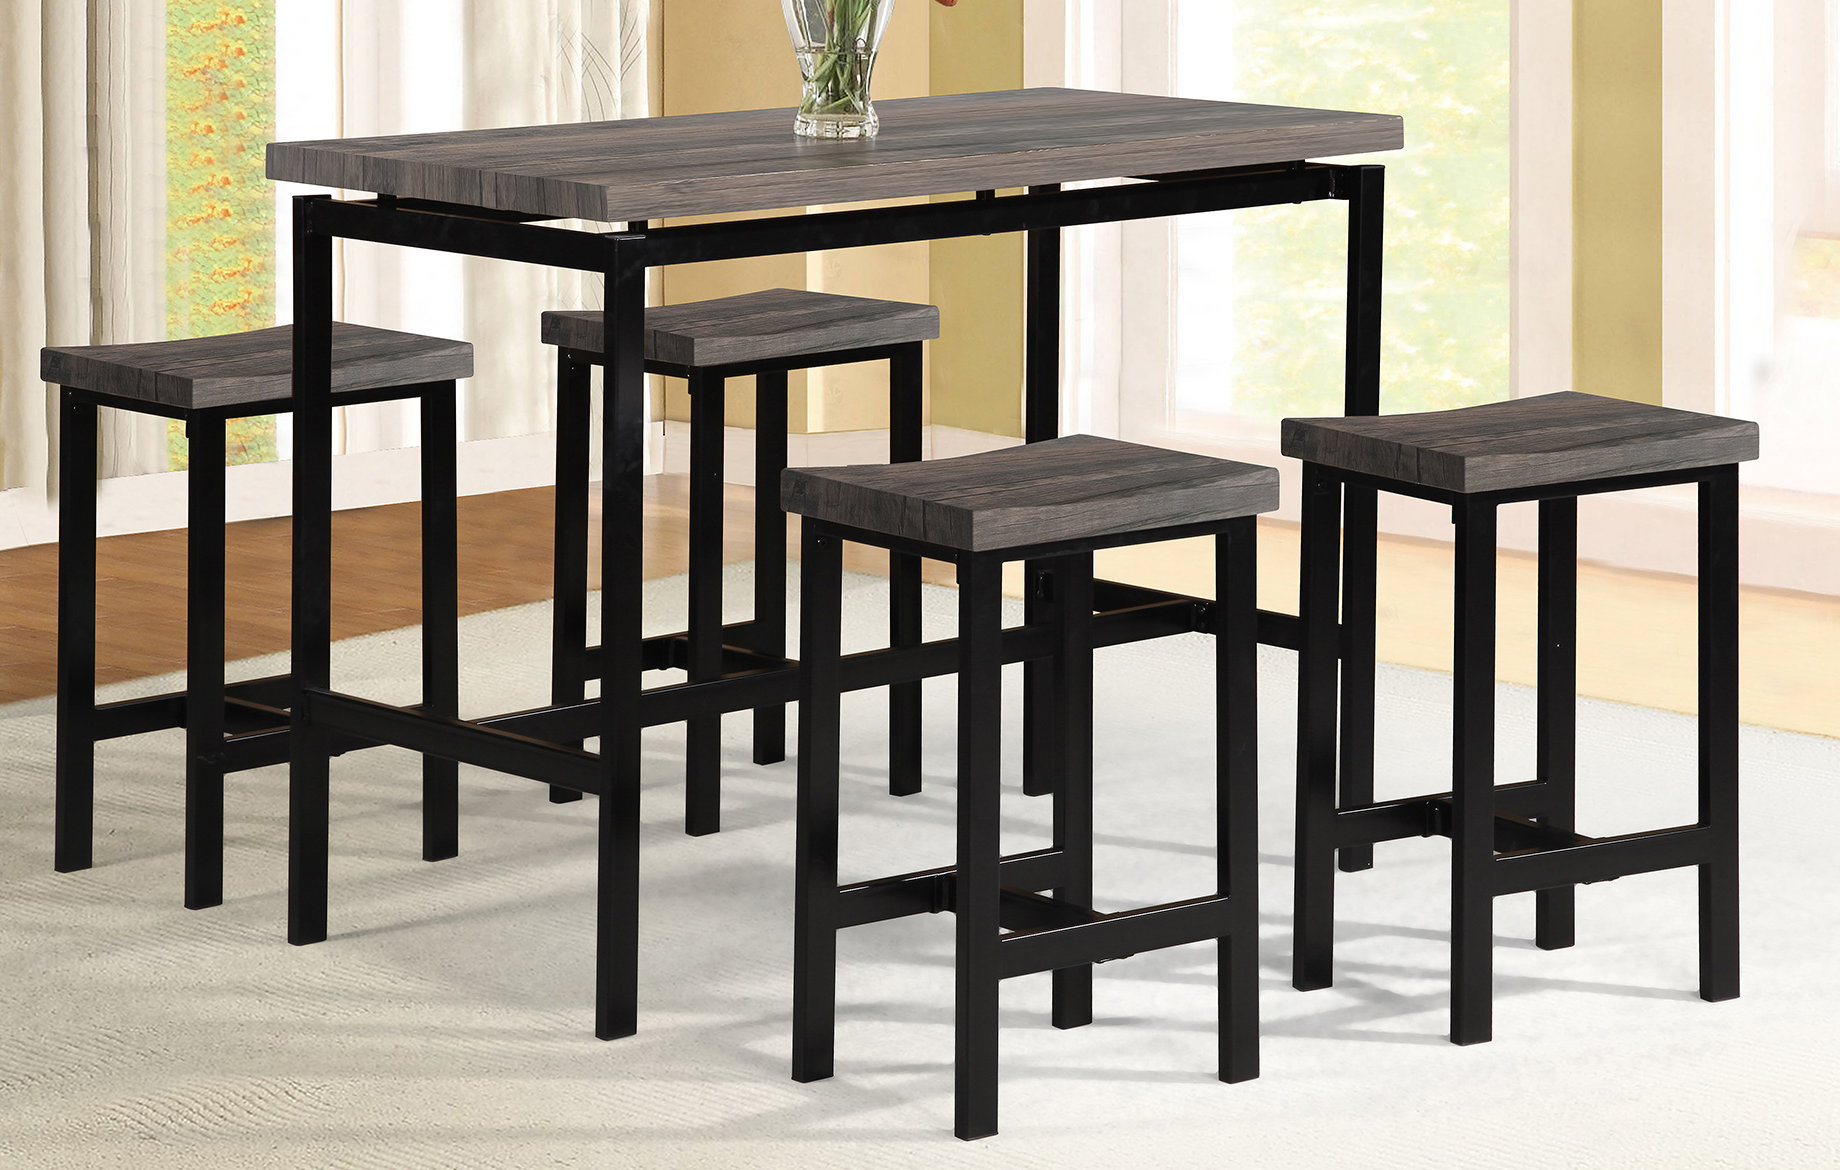 Wrought Studio Denzel 5 Piece Counter Height Breakfast Nook Dining Inside Most Recently Released Denzel 5 Piece Counter Height Breakfast Nook Dining Sets (View 25 of 25)